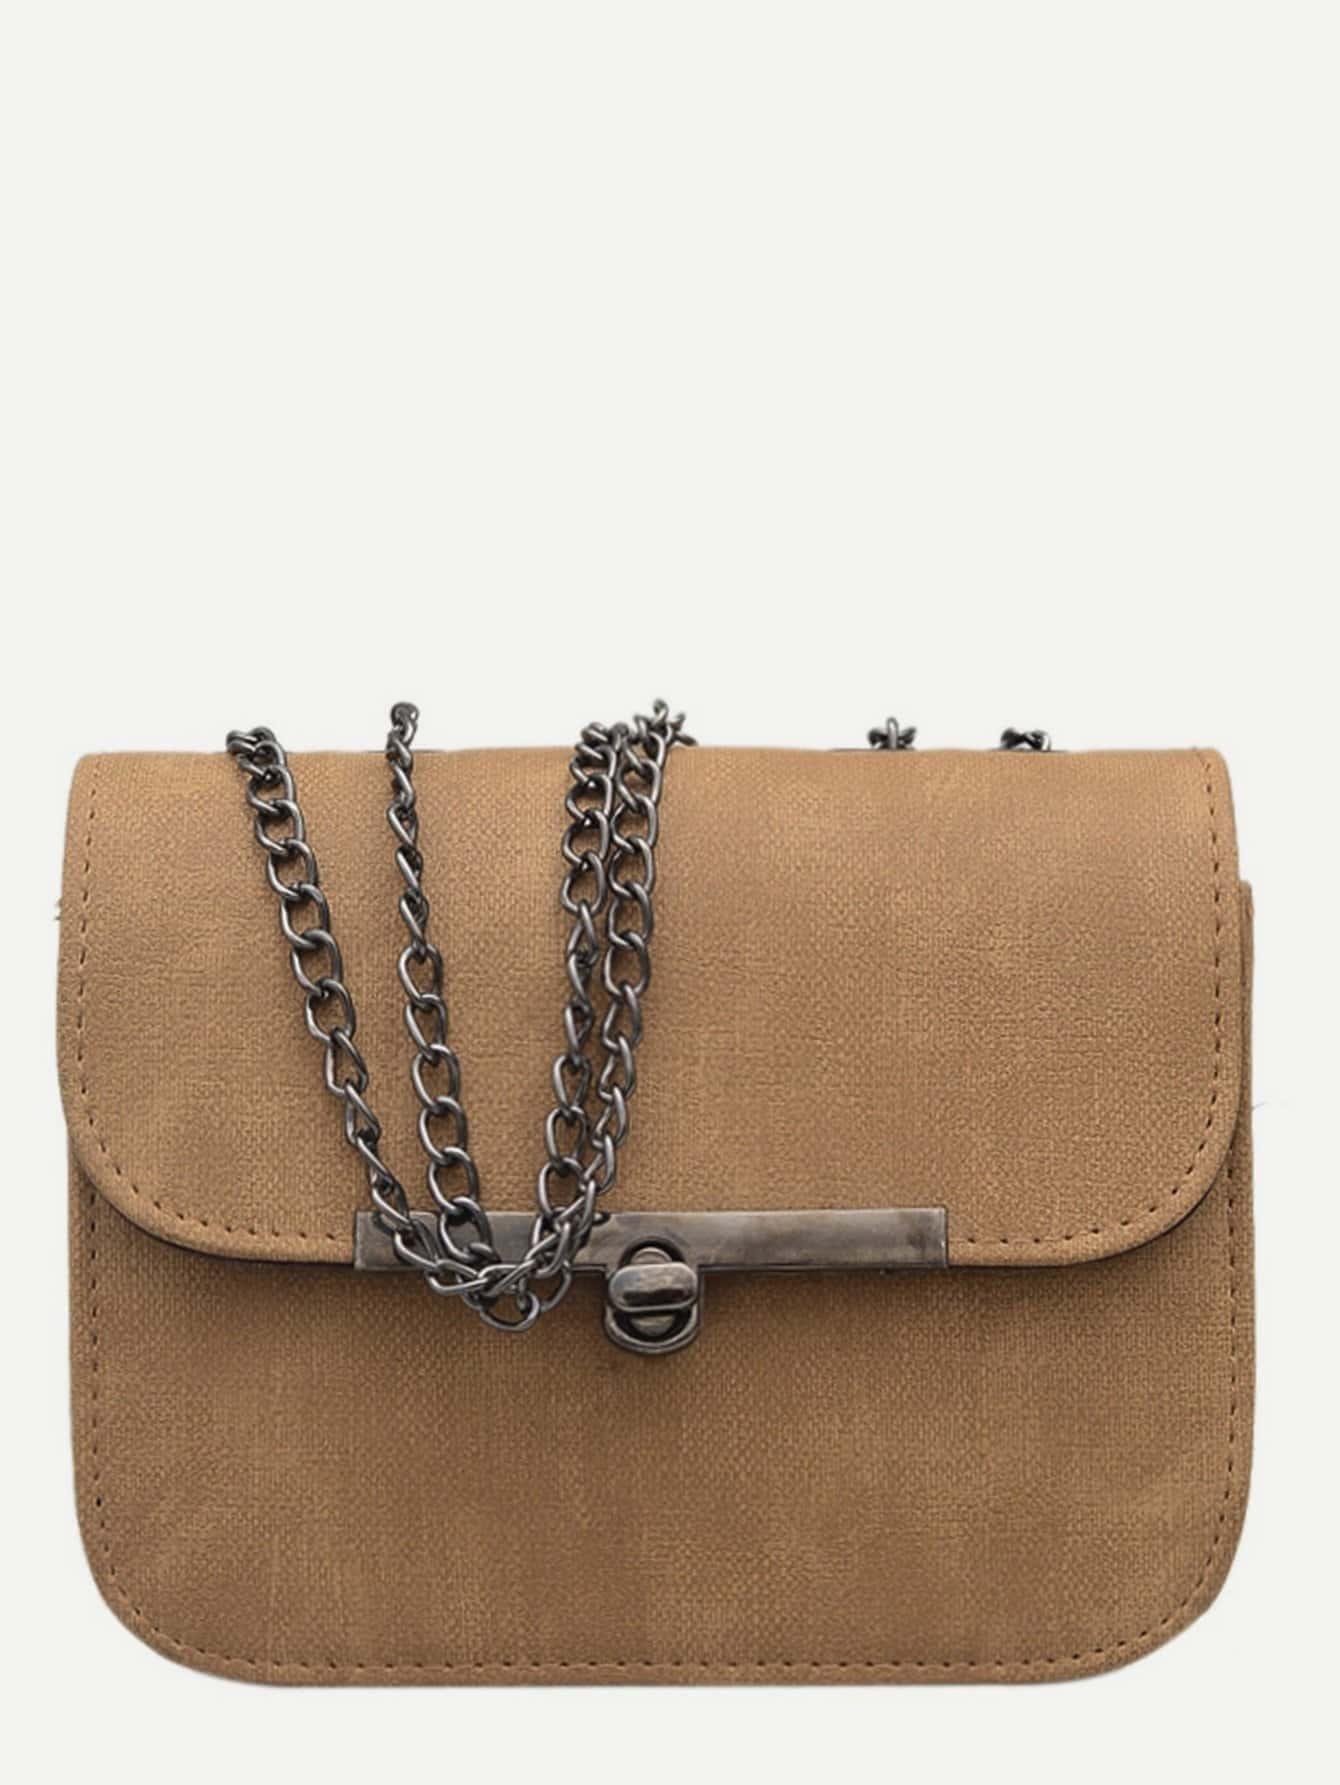 Twist Lock Chain Bag twist lock dumpling bag